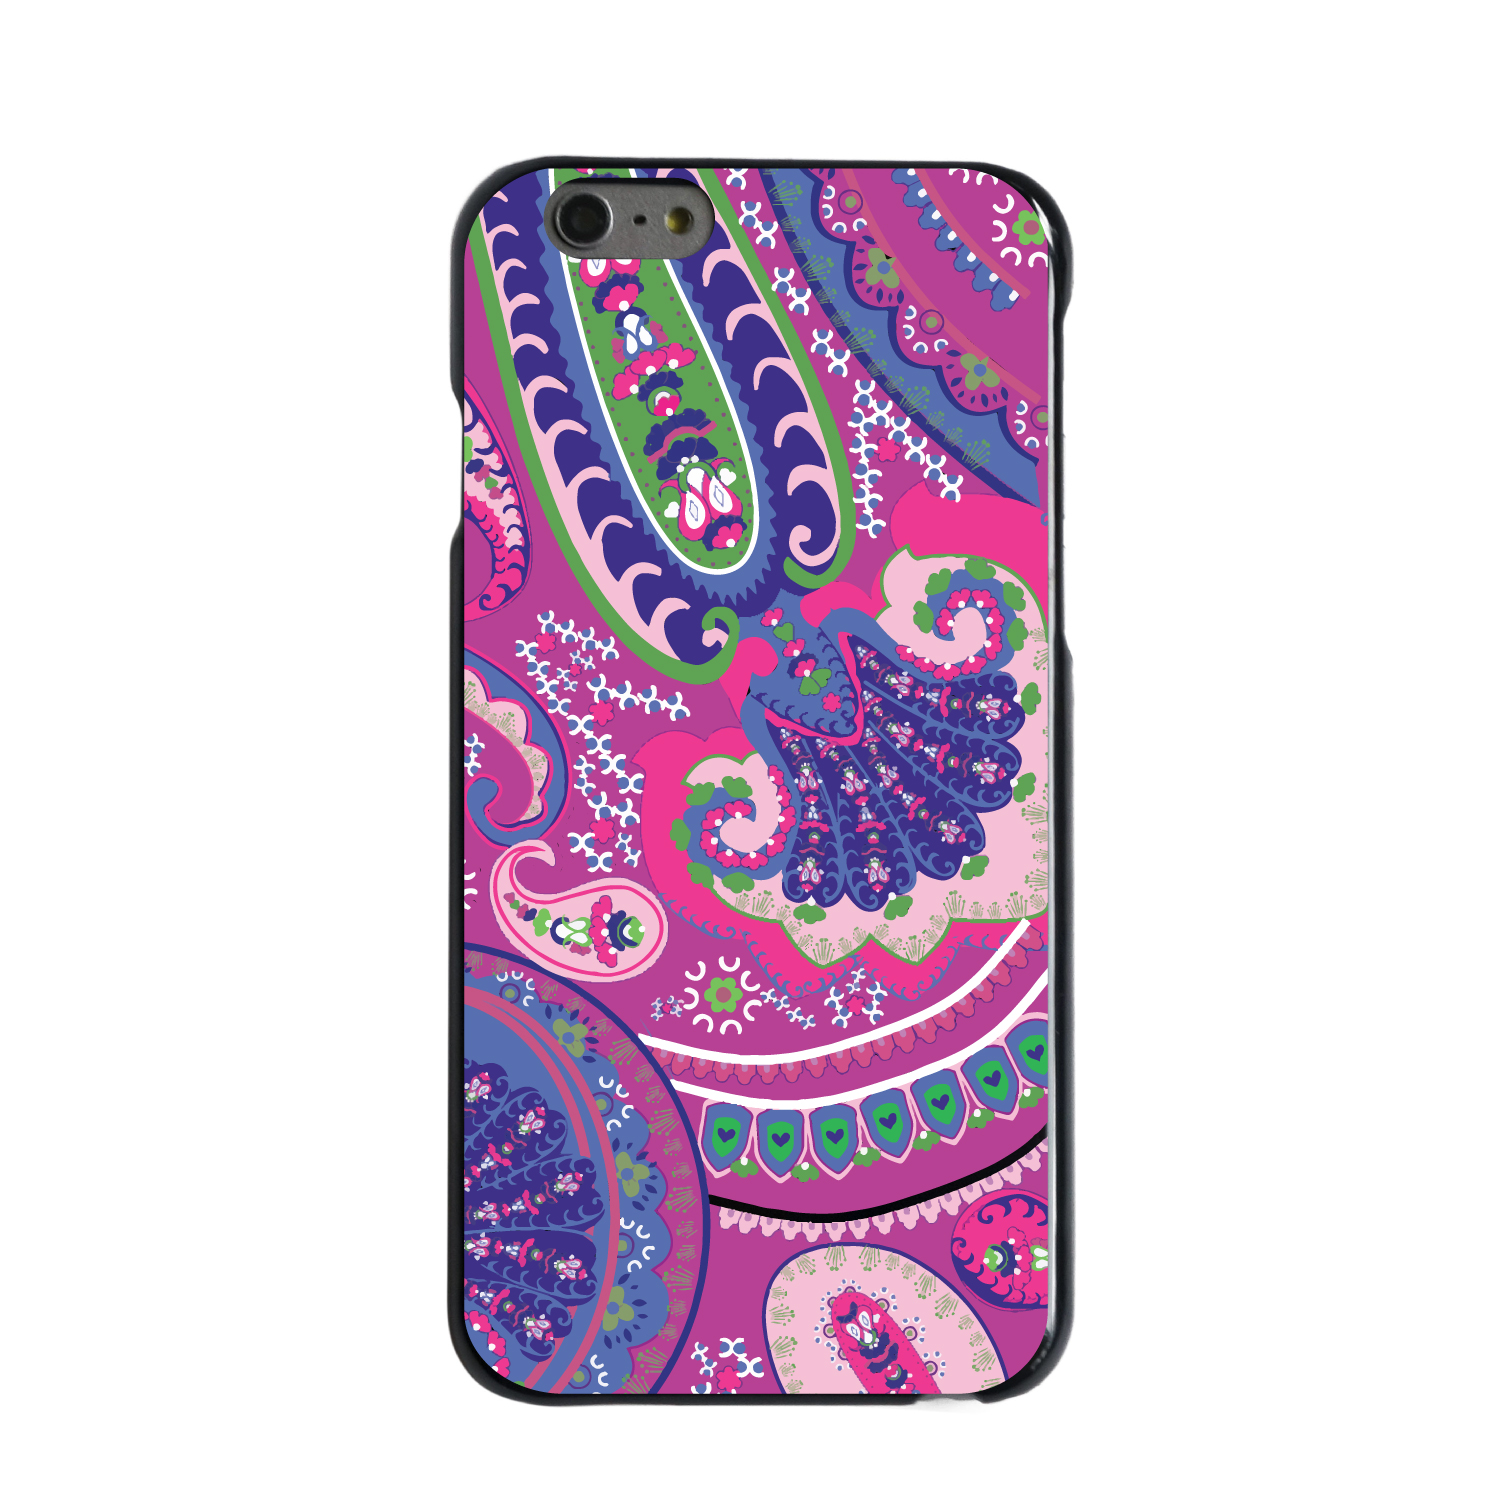 "CUSTOM Black Hard Plastic Snap-On Case for Apple iPhone 6 PLUS / 6S PLUS (5.5"" Screen) - Pink Purple Green Paisley"